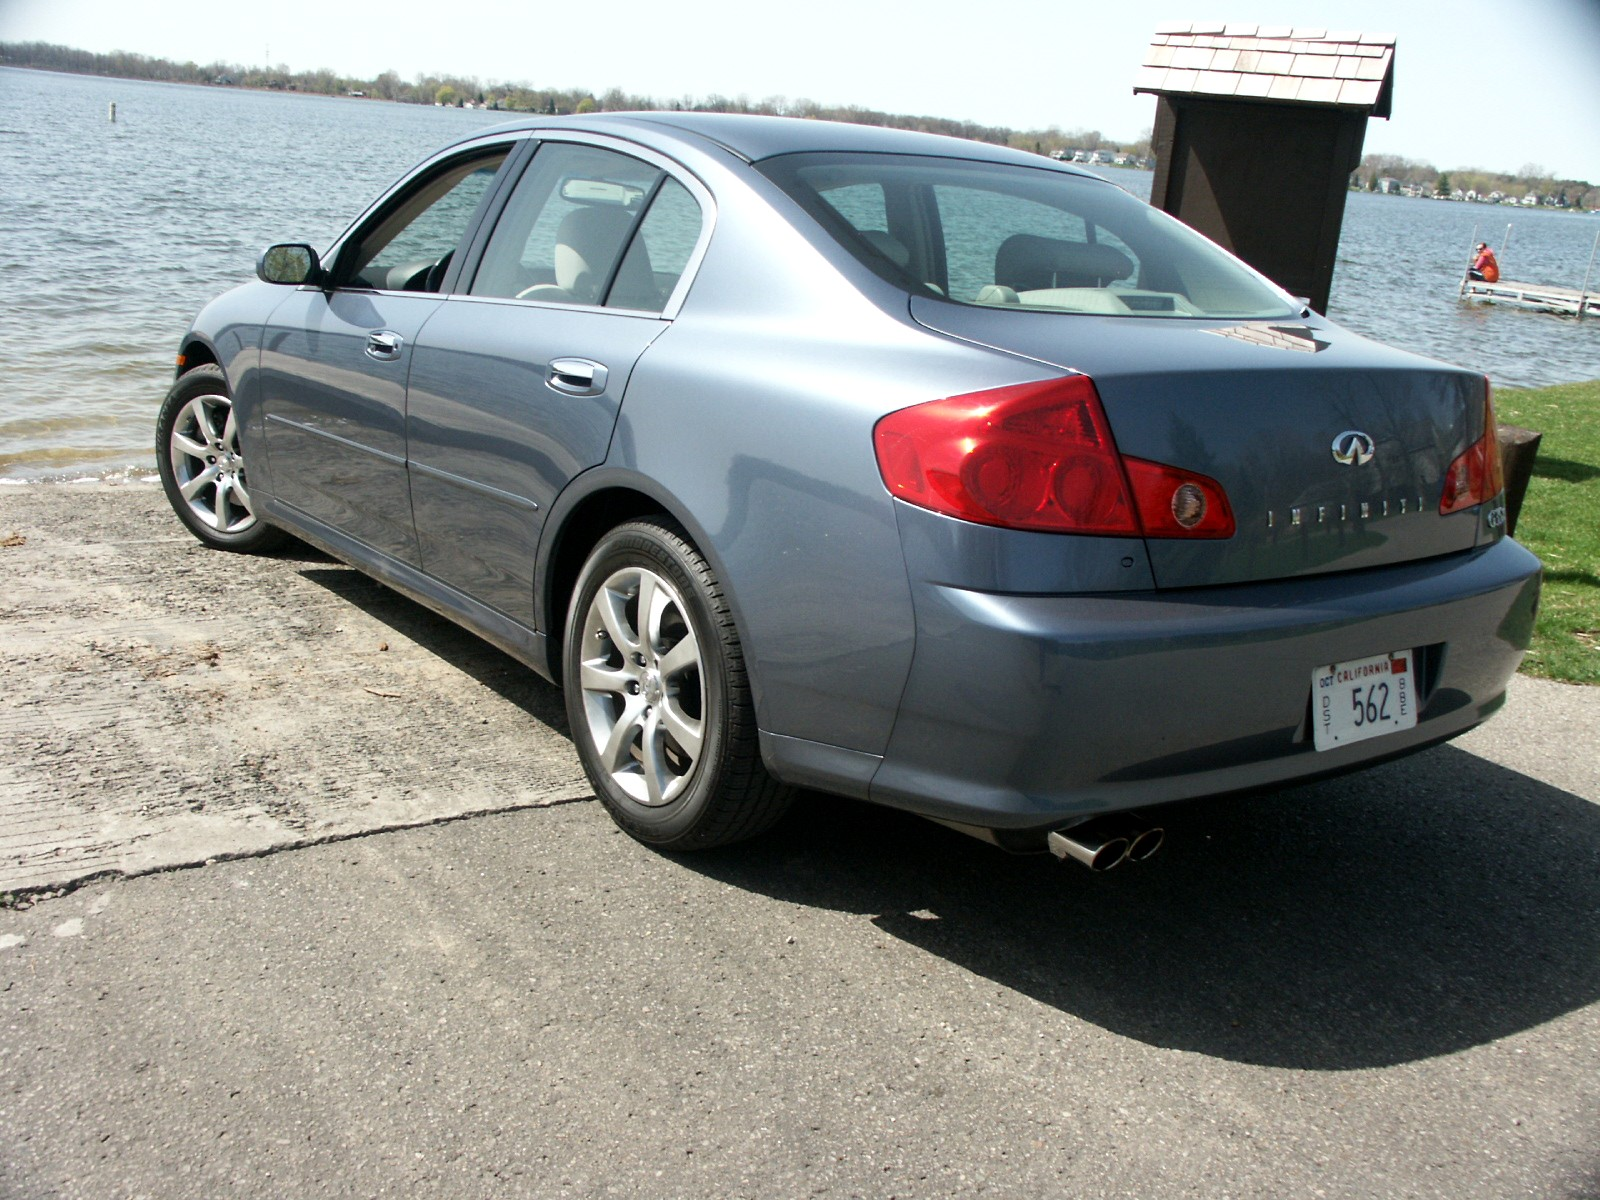 2006 infiniti g35x review photo select to view enlarged photo vanachro Choice Image